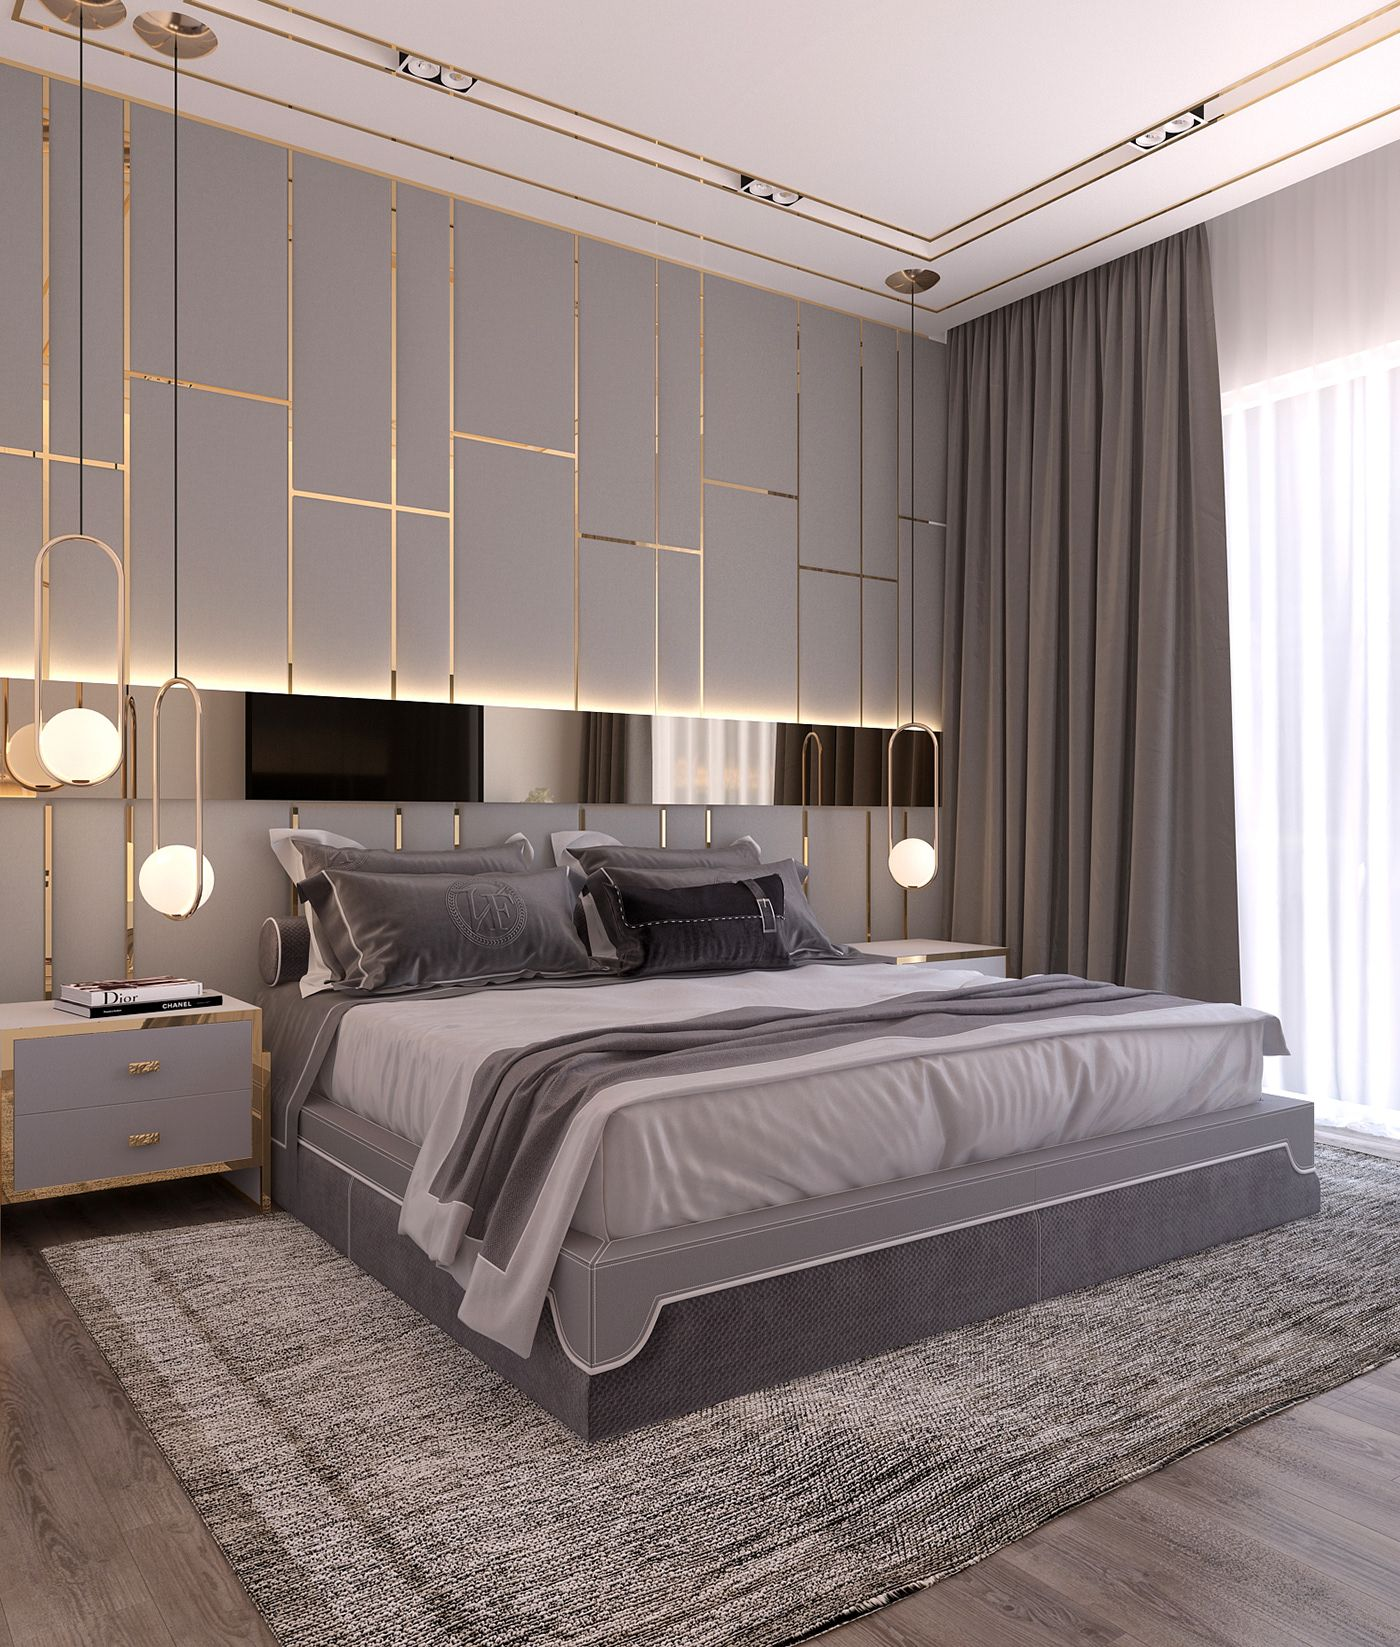 Best Modern Style Bedroom Dubai Project On Behance With 400 x 300